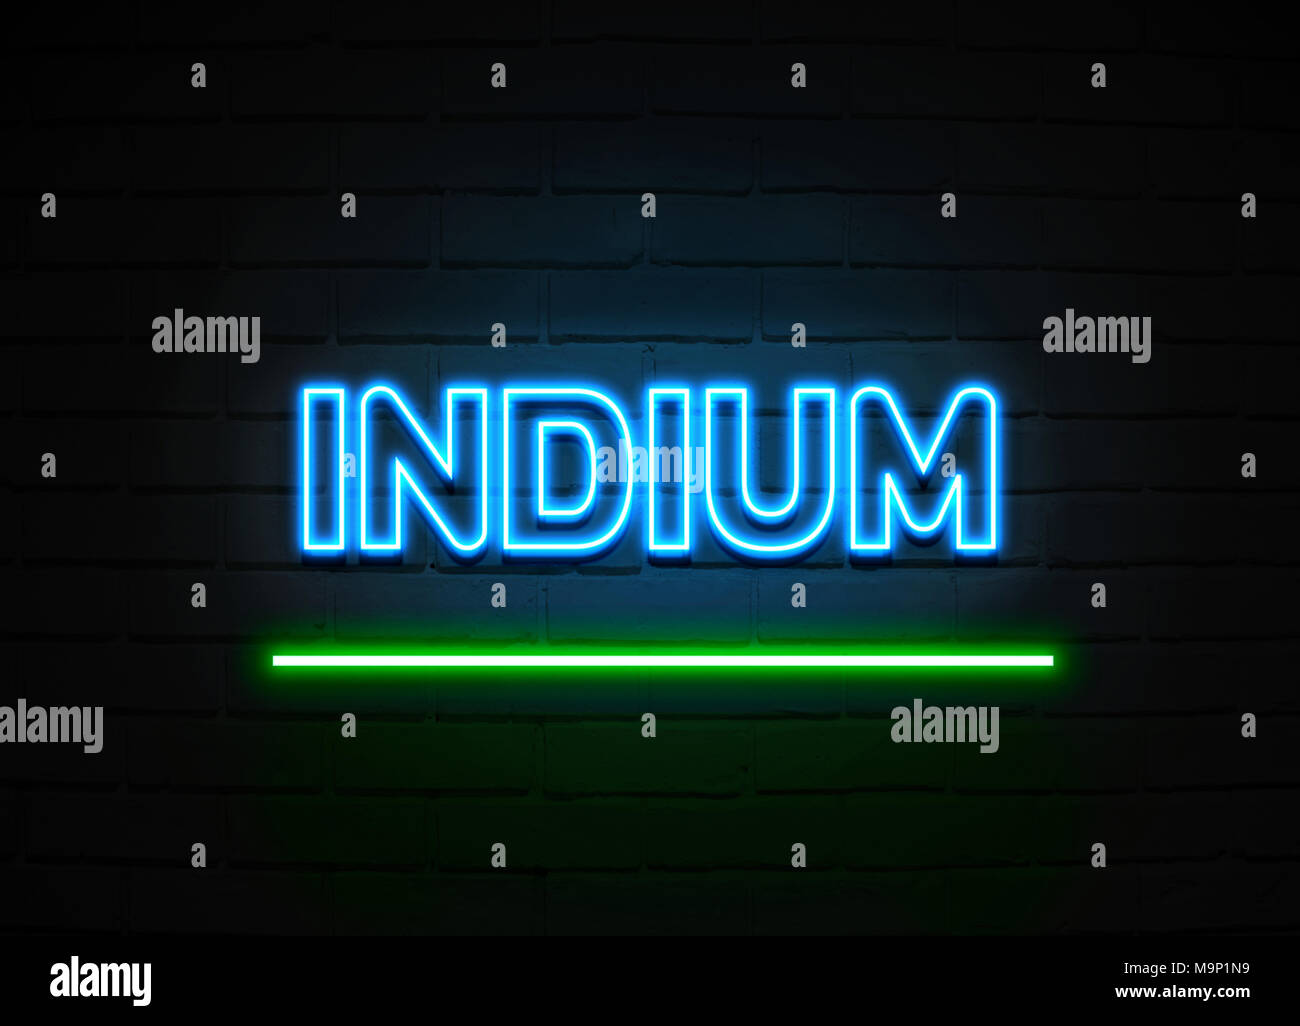 Indium stock photos indium stock images alamy indium neon sign glowing neon sign on brickwall wall 3d rendered royalty free stock biocorpaavc Images